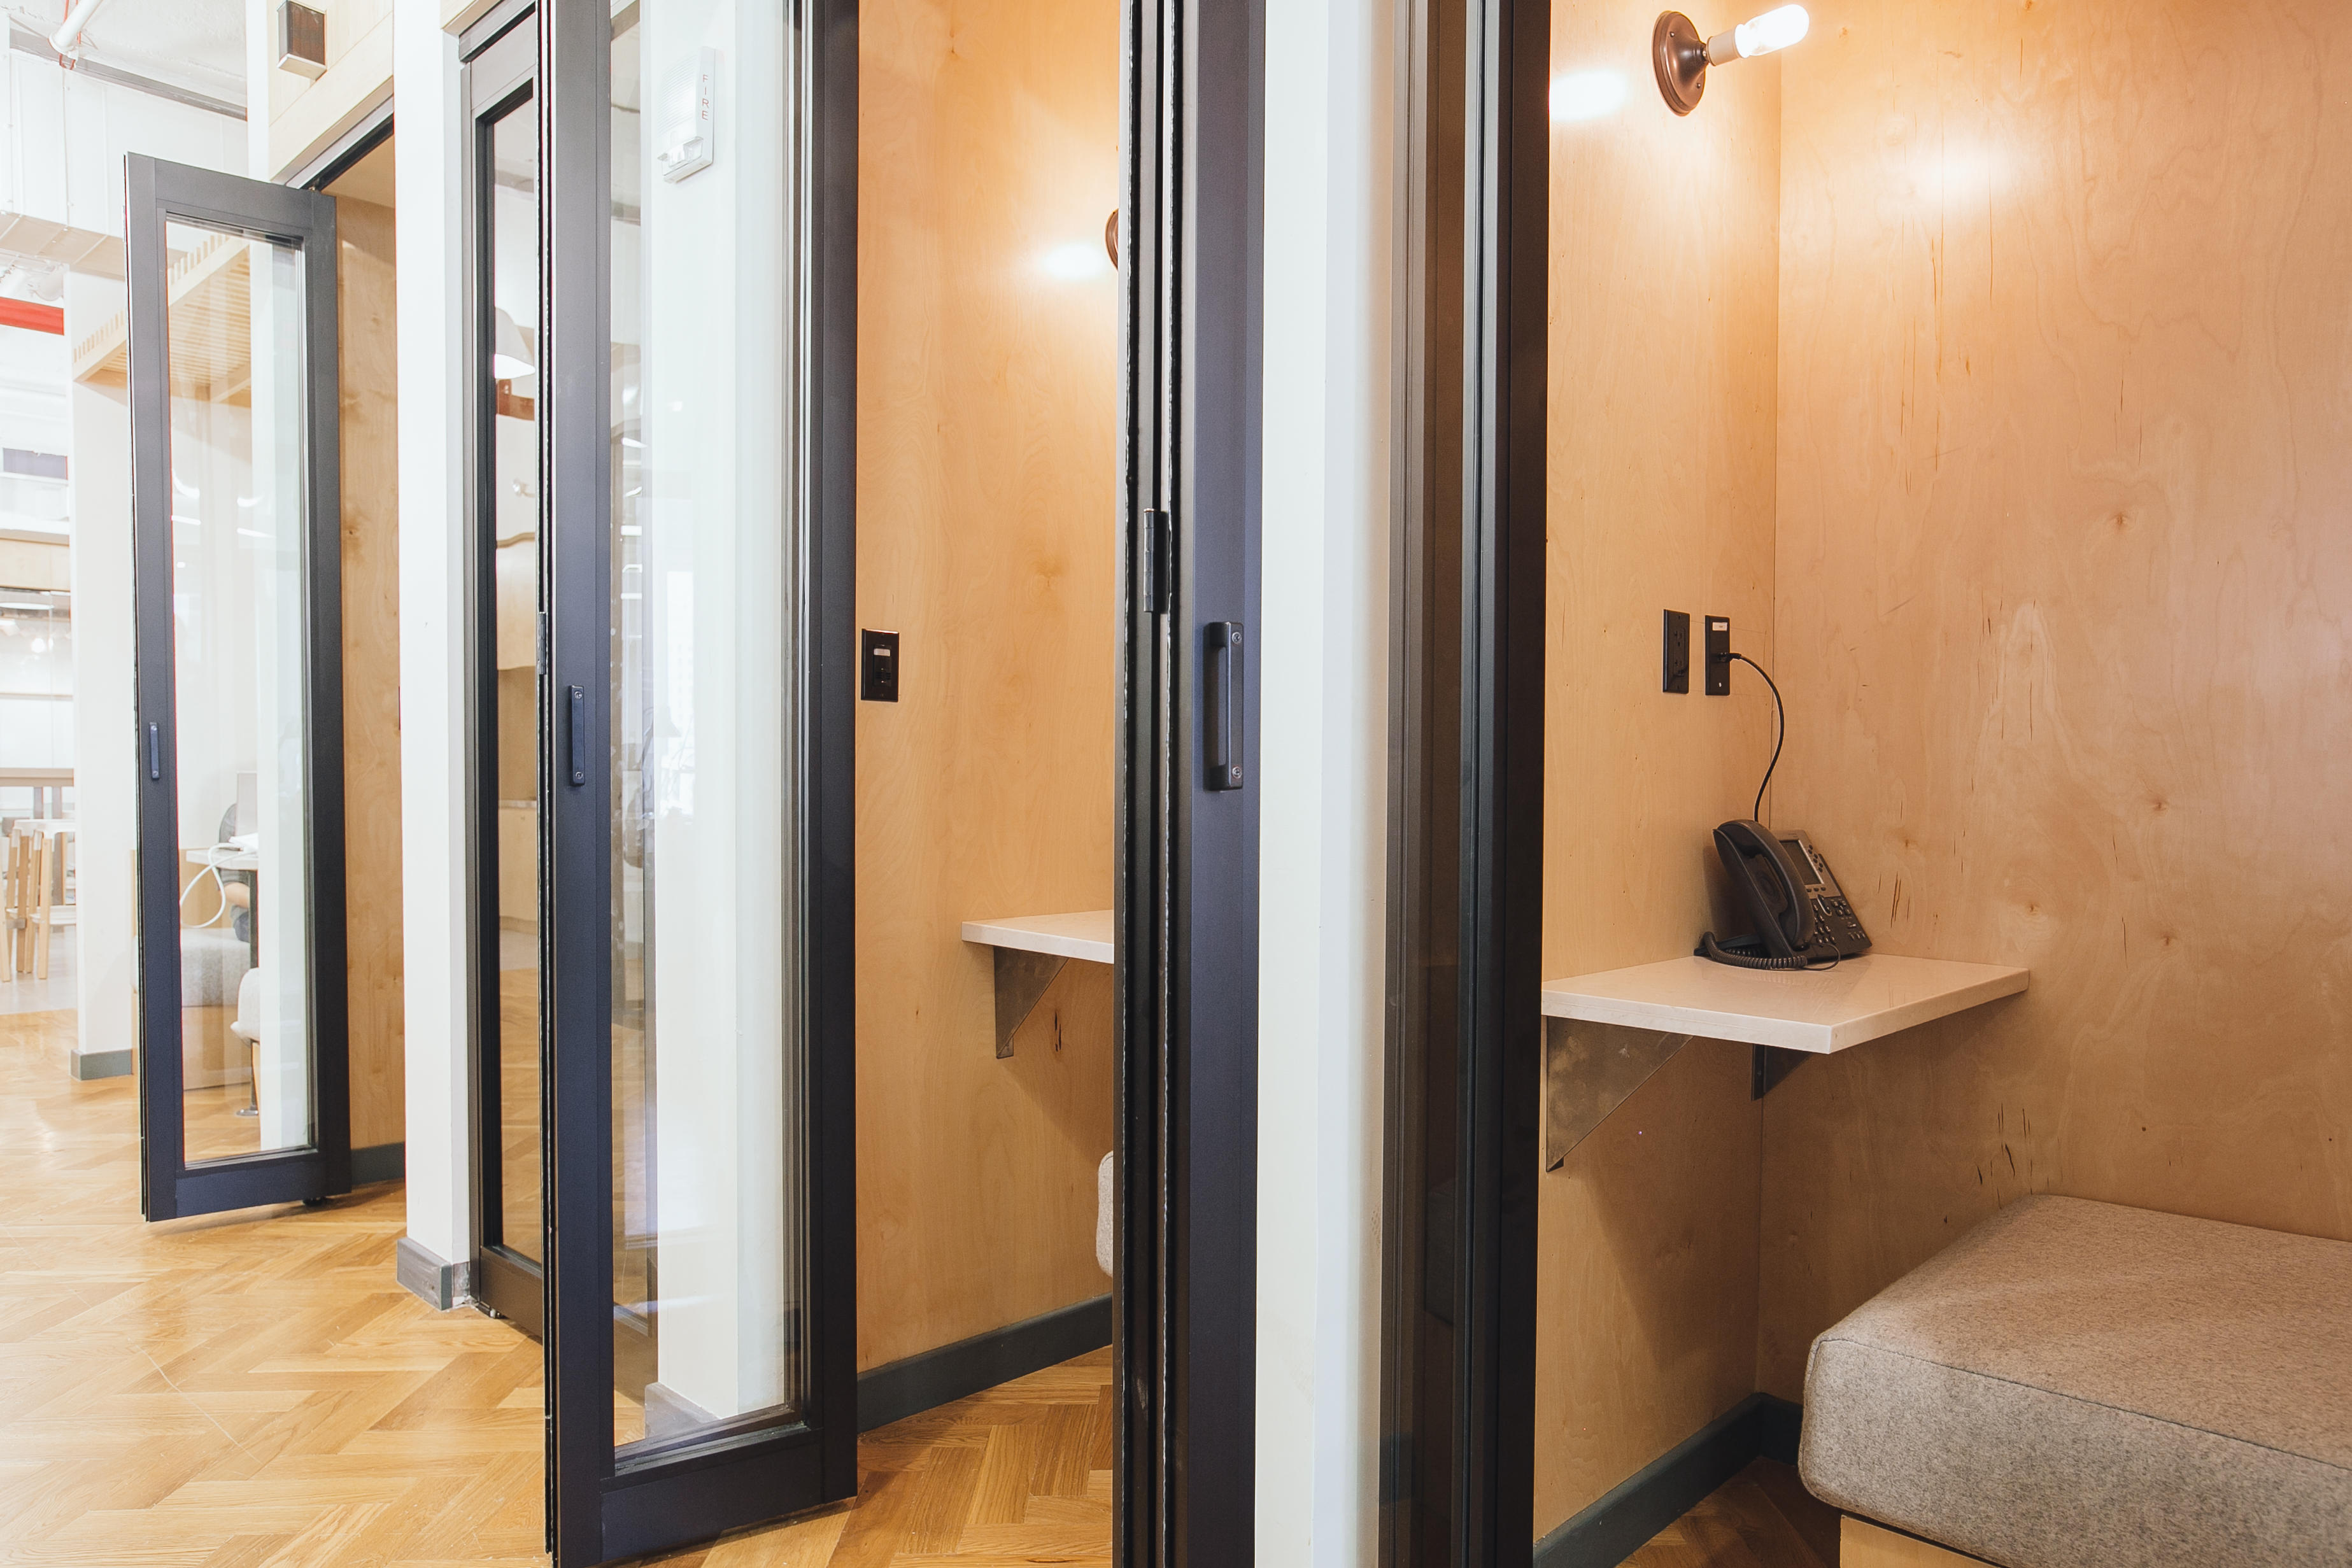 Example shown: Phone Booth (City Hall, New York City) WeWork 33 Queen St London 020 3695 7895